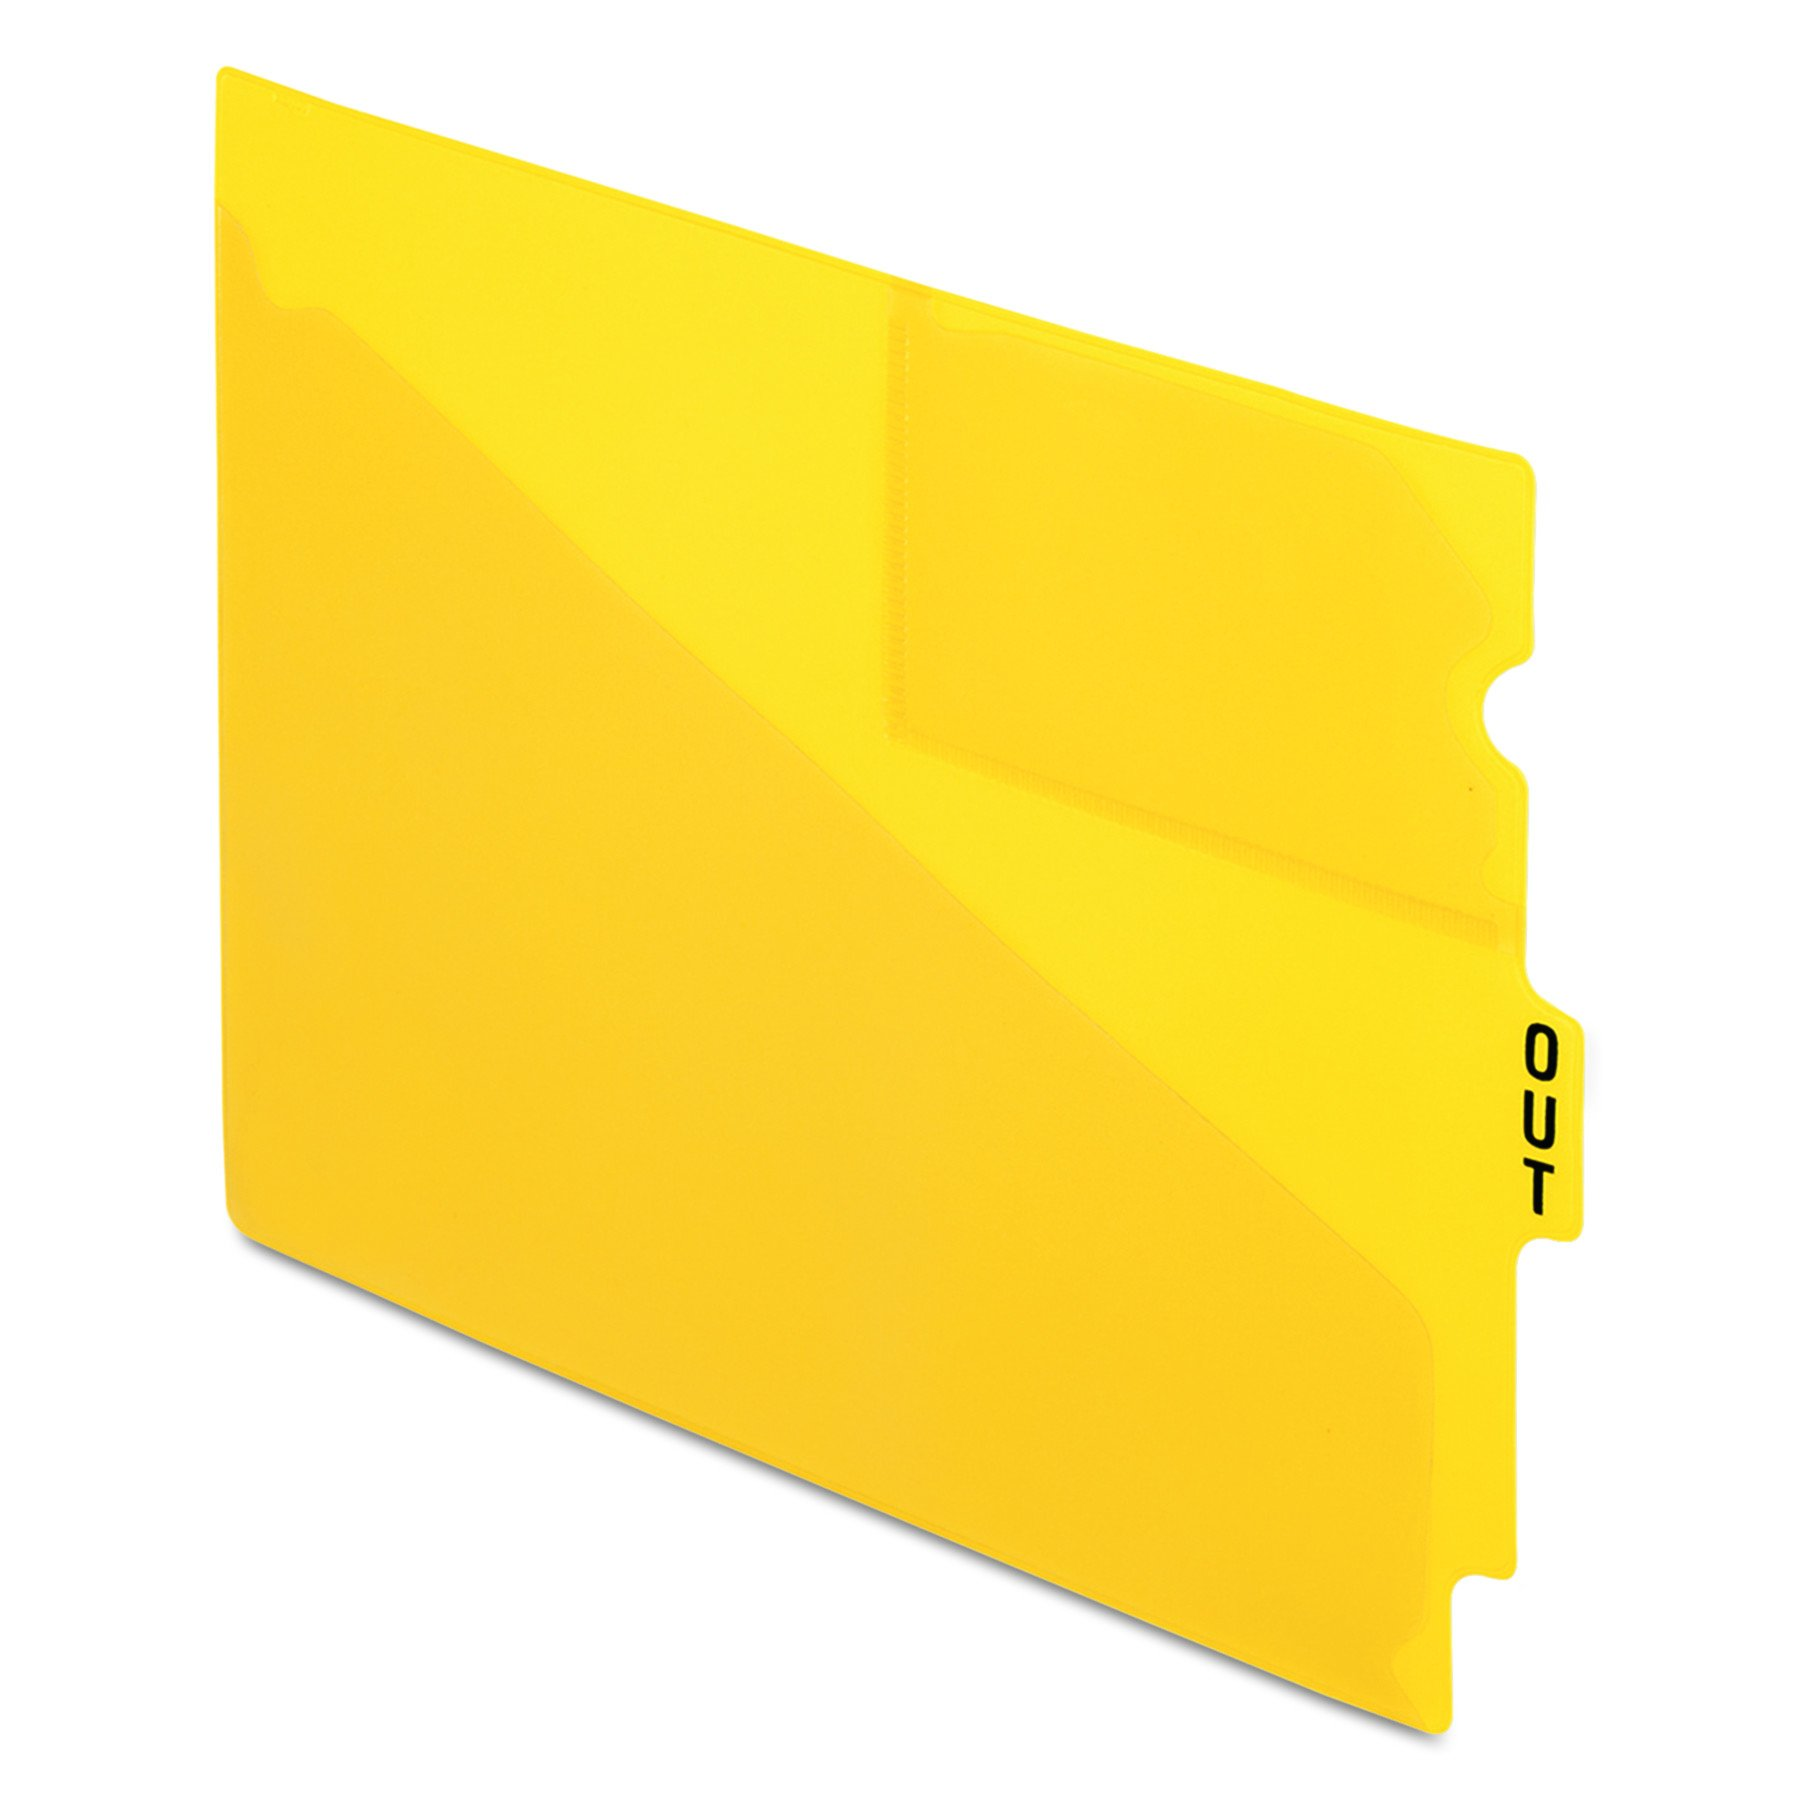 Pendaflex 13544 End Tab Vinyl Outguides w/Center Tab Printed Out, Letter Size, Yellow, 50/box